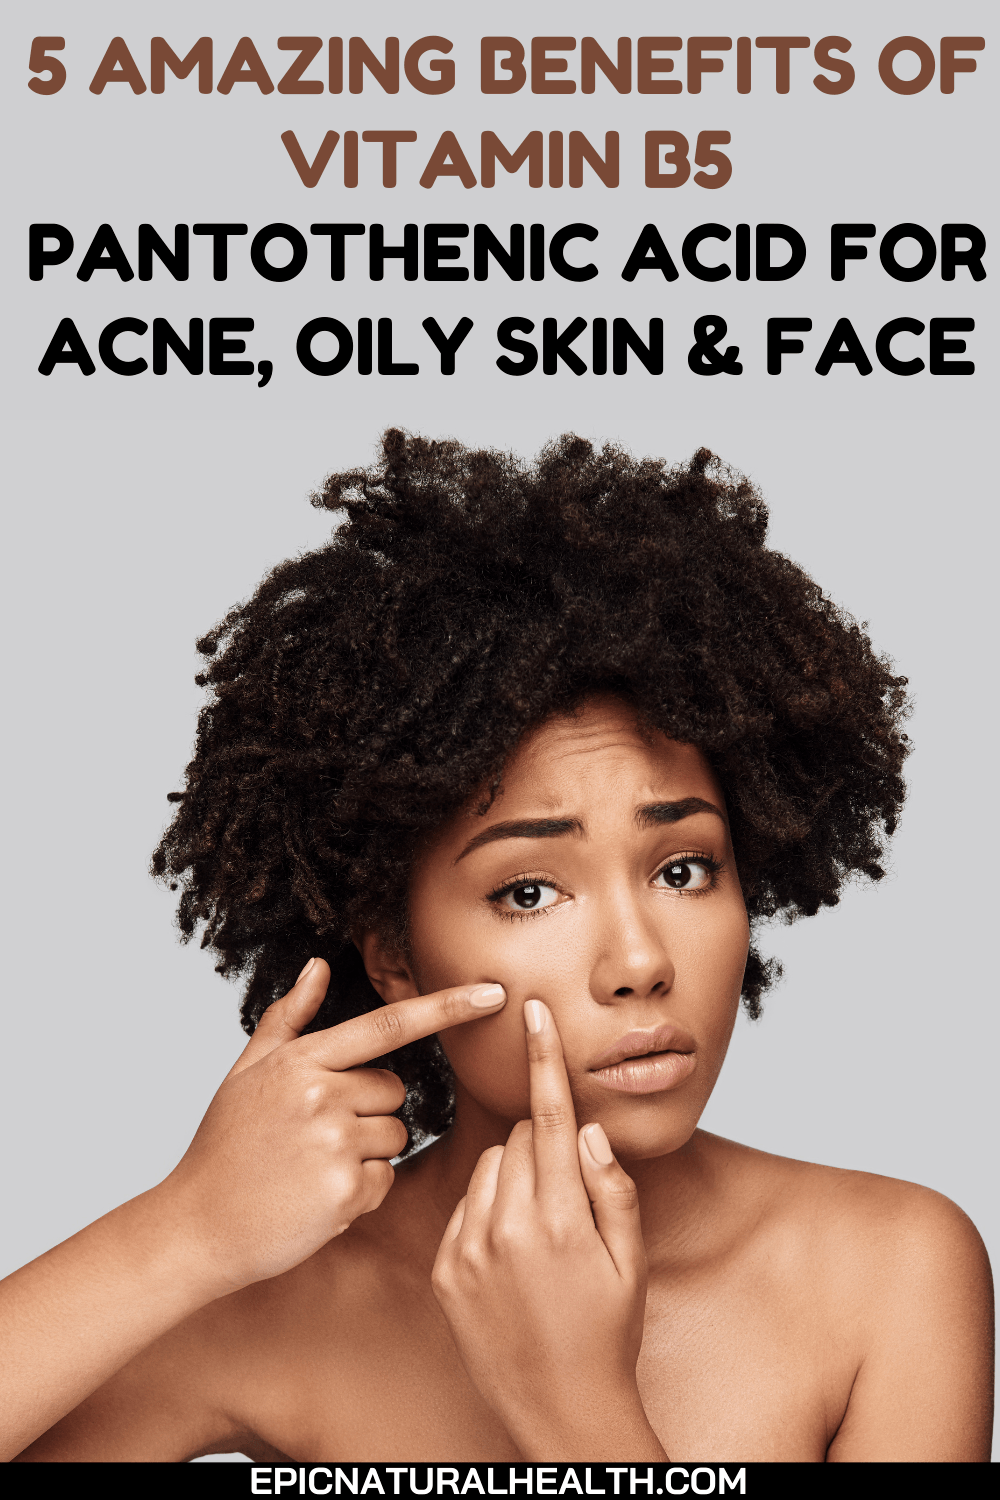 5 amazing benefits of vitamin b5 pantothenic acid for acne, oily skin and face